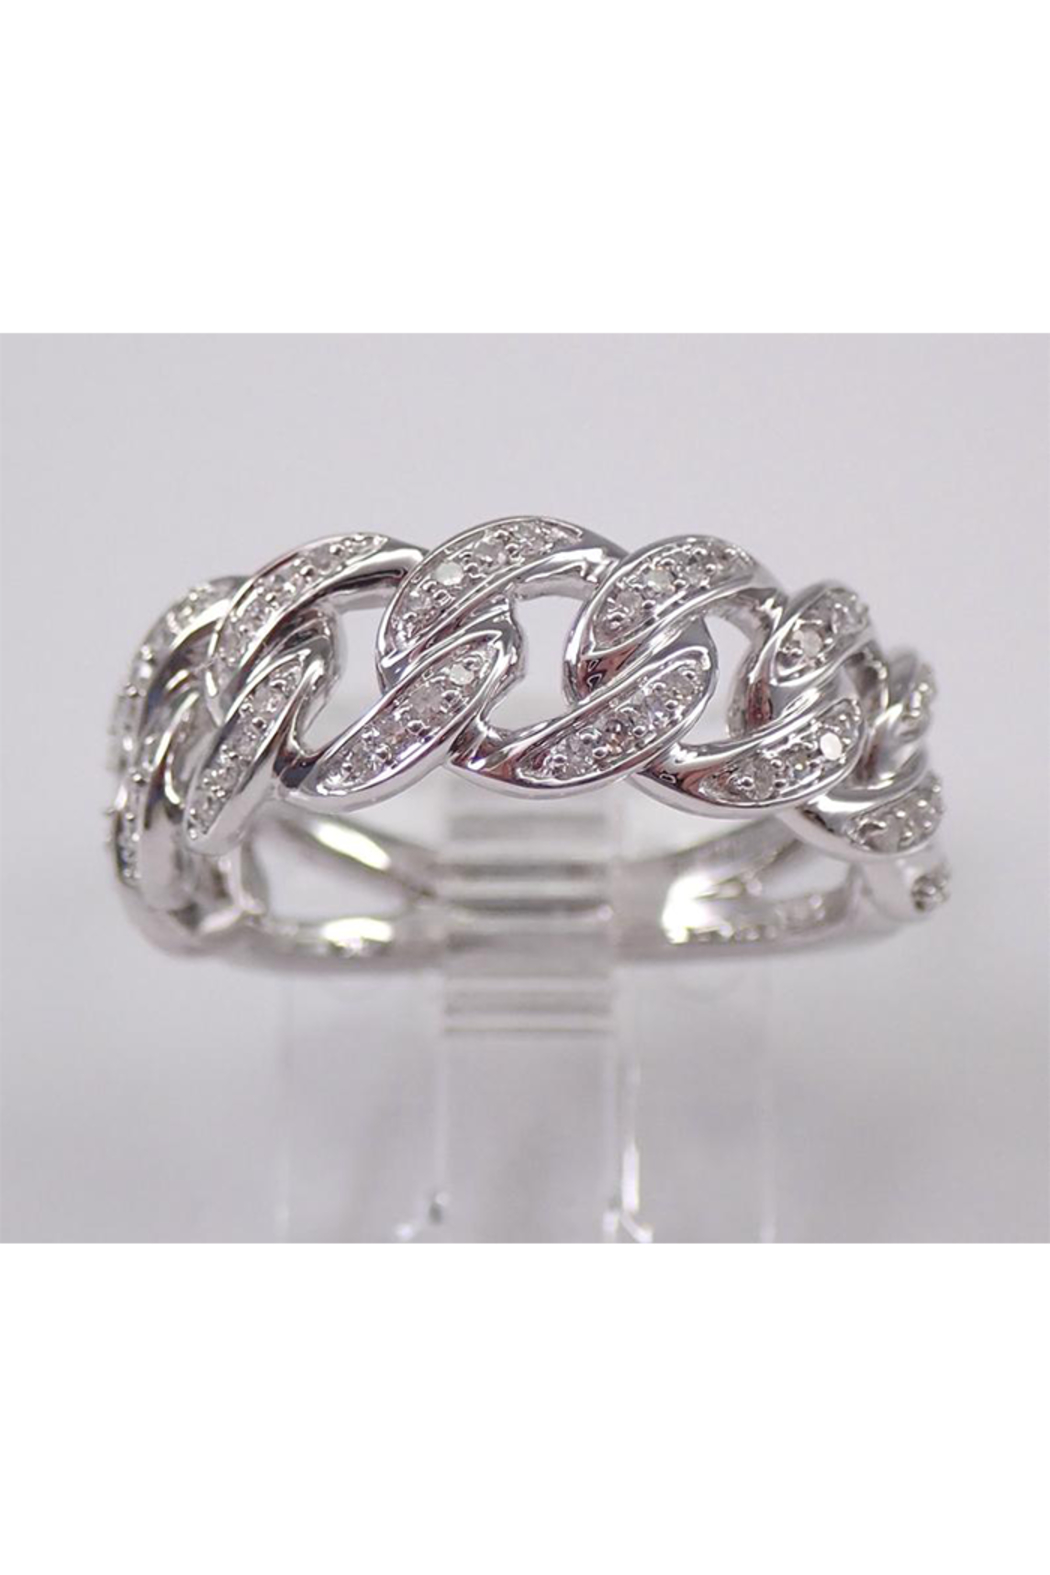 Margolin & Co 14K White Gold CHAIN LINK Diamond Wedding Ring Anniversary Band Stackable Size 7 Unique Style - Main Image